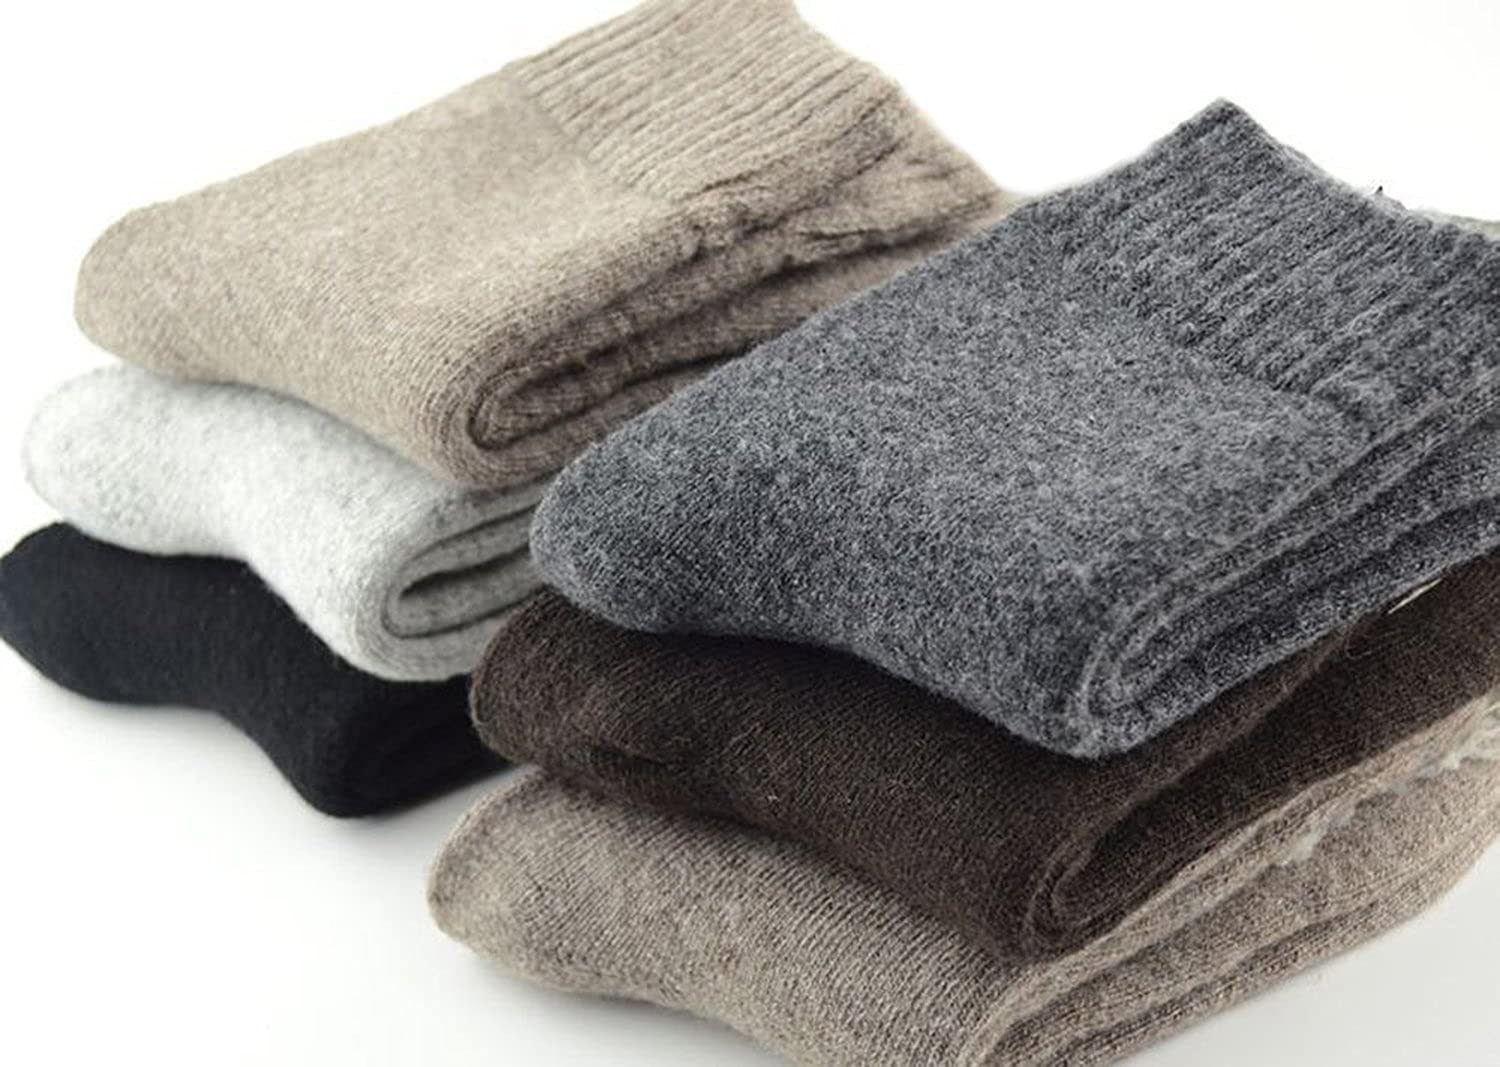 EBMORE Mens Heavy Thick Wool Socks Fuzzy Warm Comfort Crew Winter Socks 5 Pack